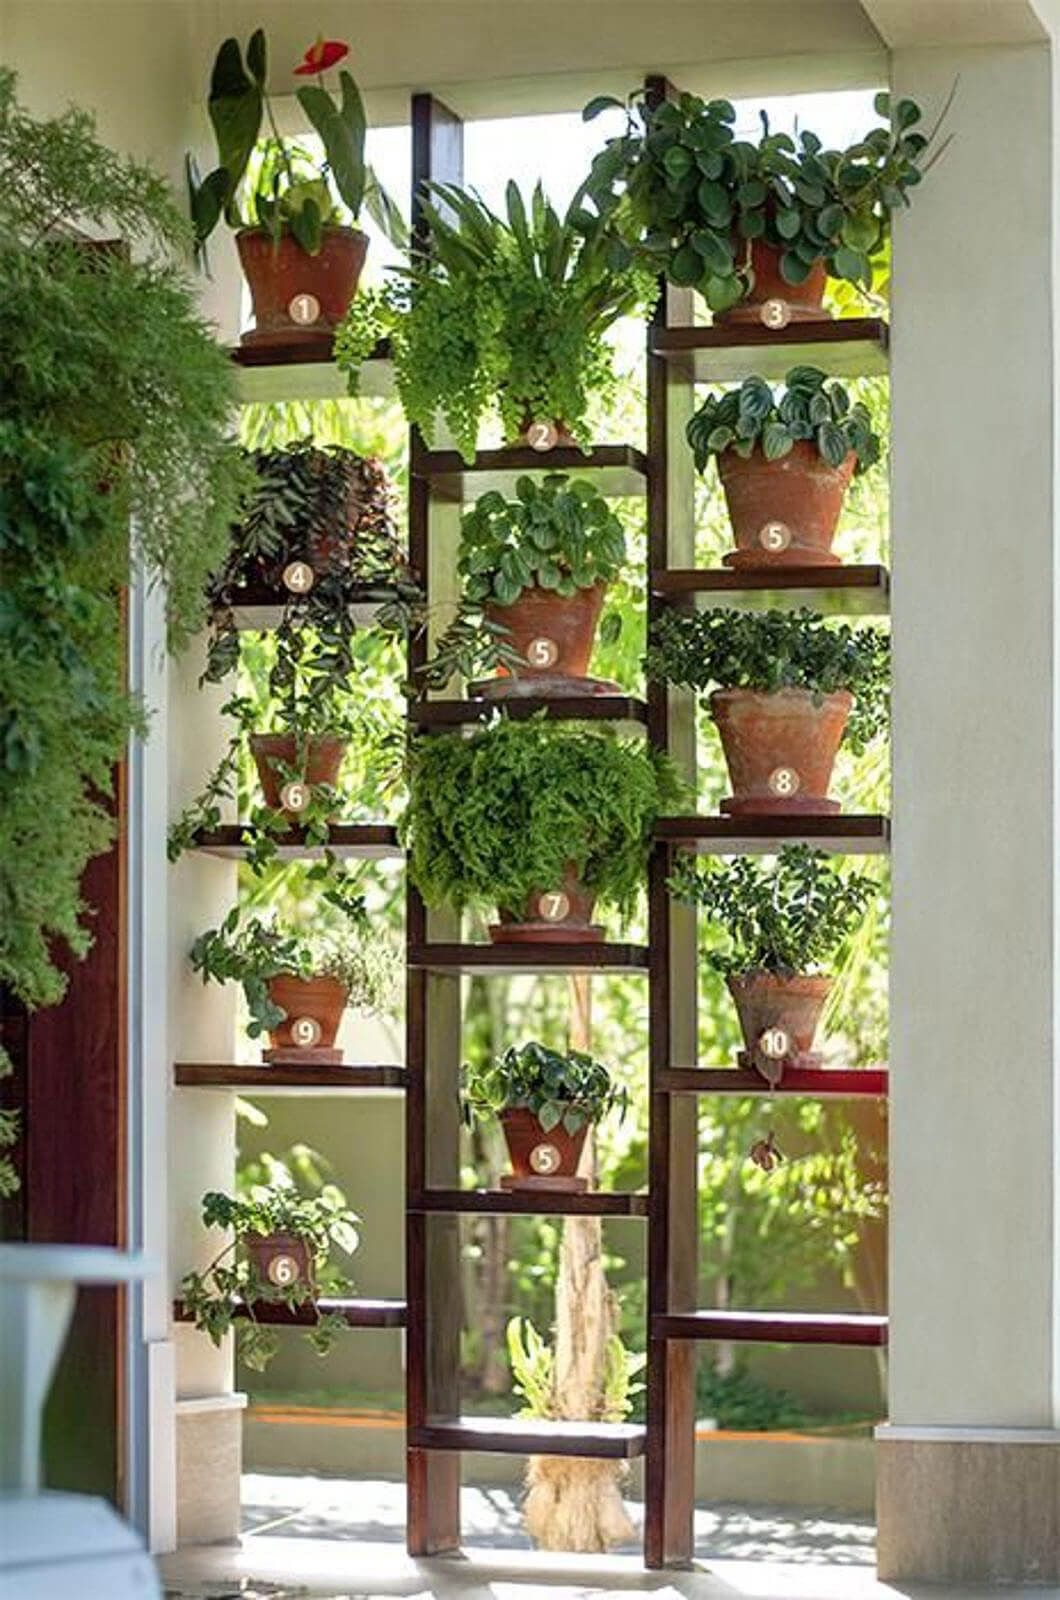 25 Creative Herb Garden Ideas for Indoors and Outdoors